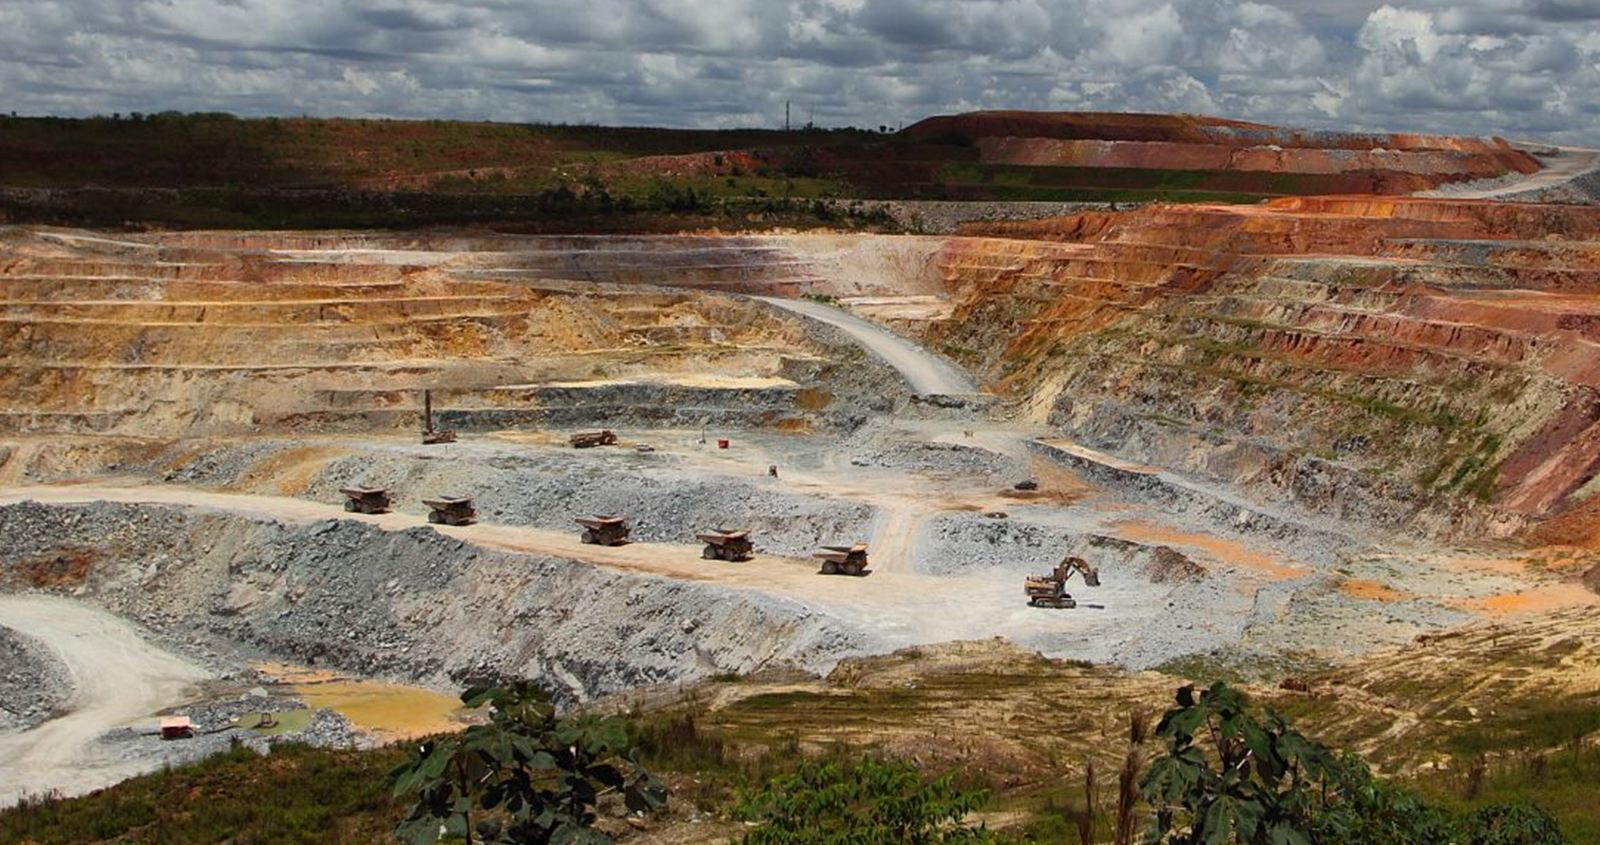 Suriname is seeking renegotiation of MA's with IAMGOLD and NEWMONT